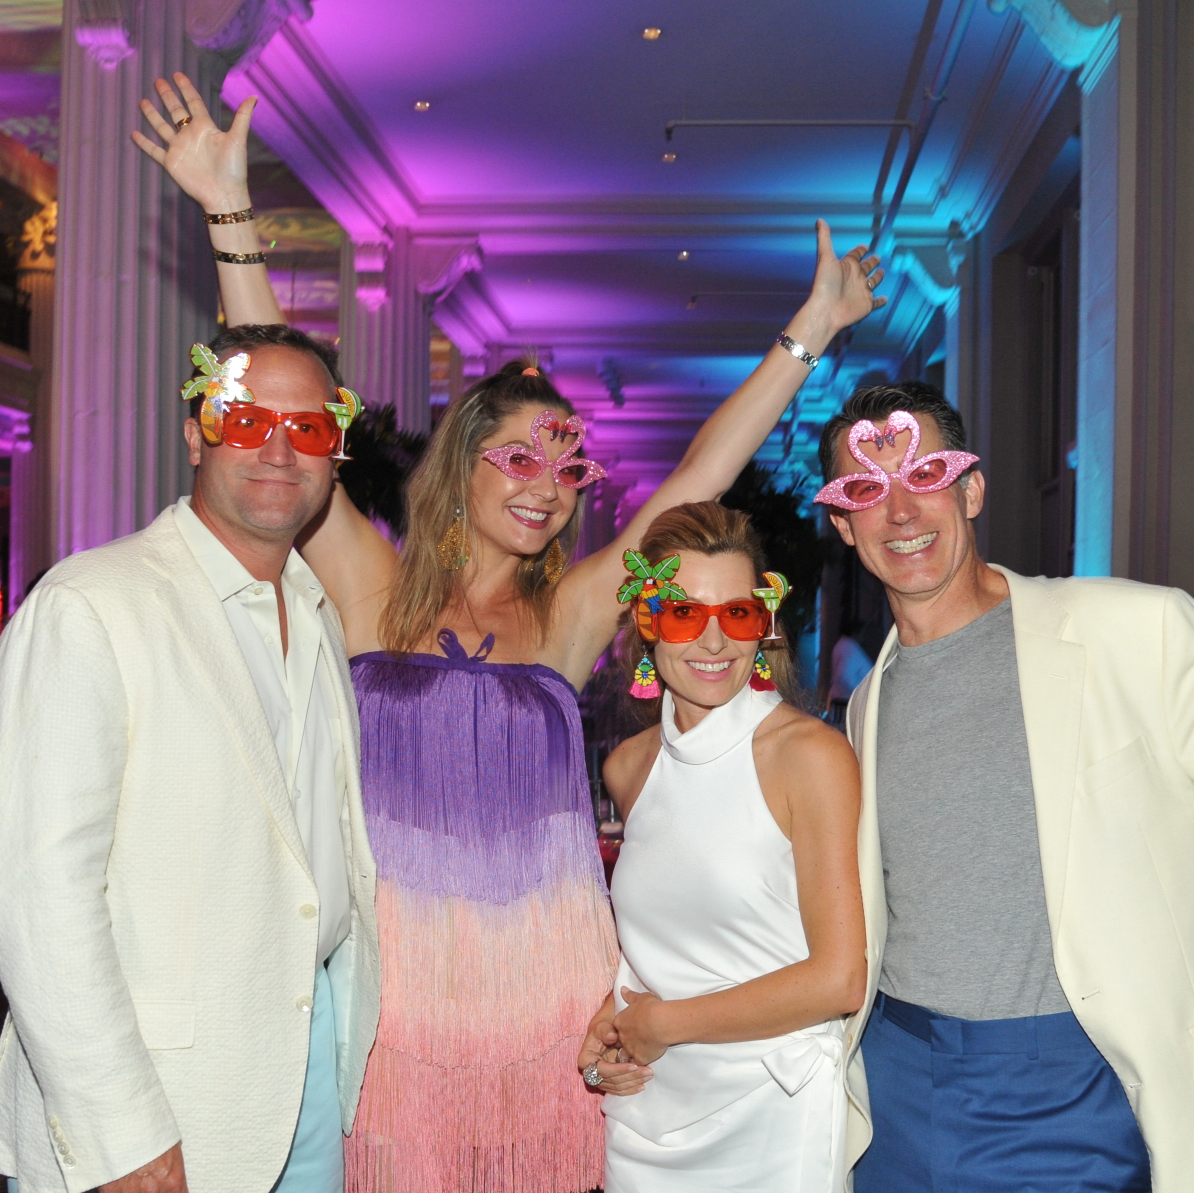 Josh and Lisa Oren, Carolyn and Garry Tanner at Miami Vice Children's Museum Gala